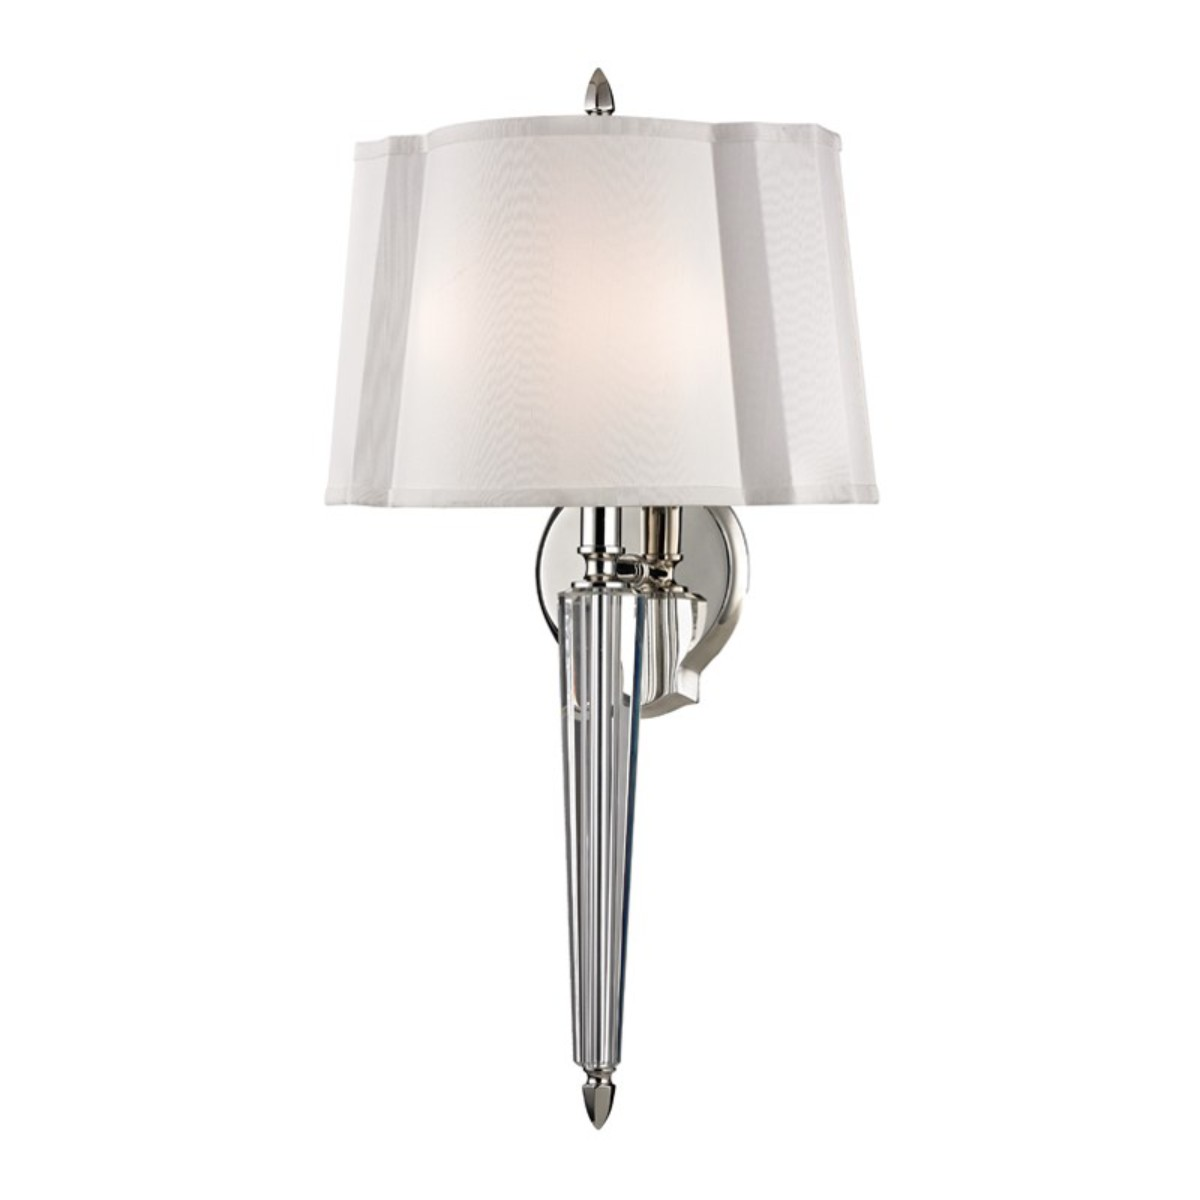 Hudson Valley I Oyster Bay Wall Sconce I Polished Nickel